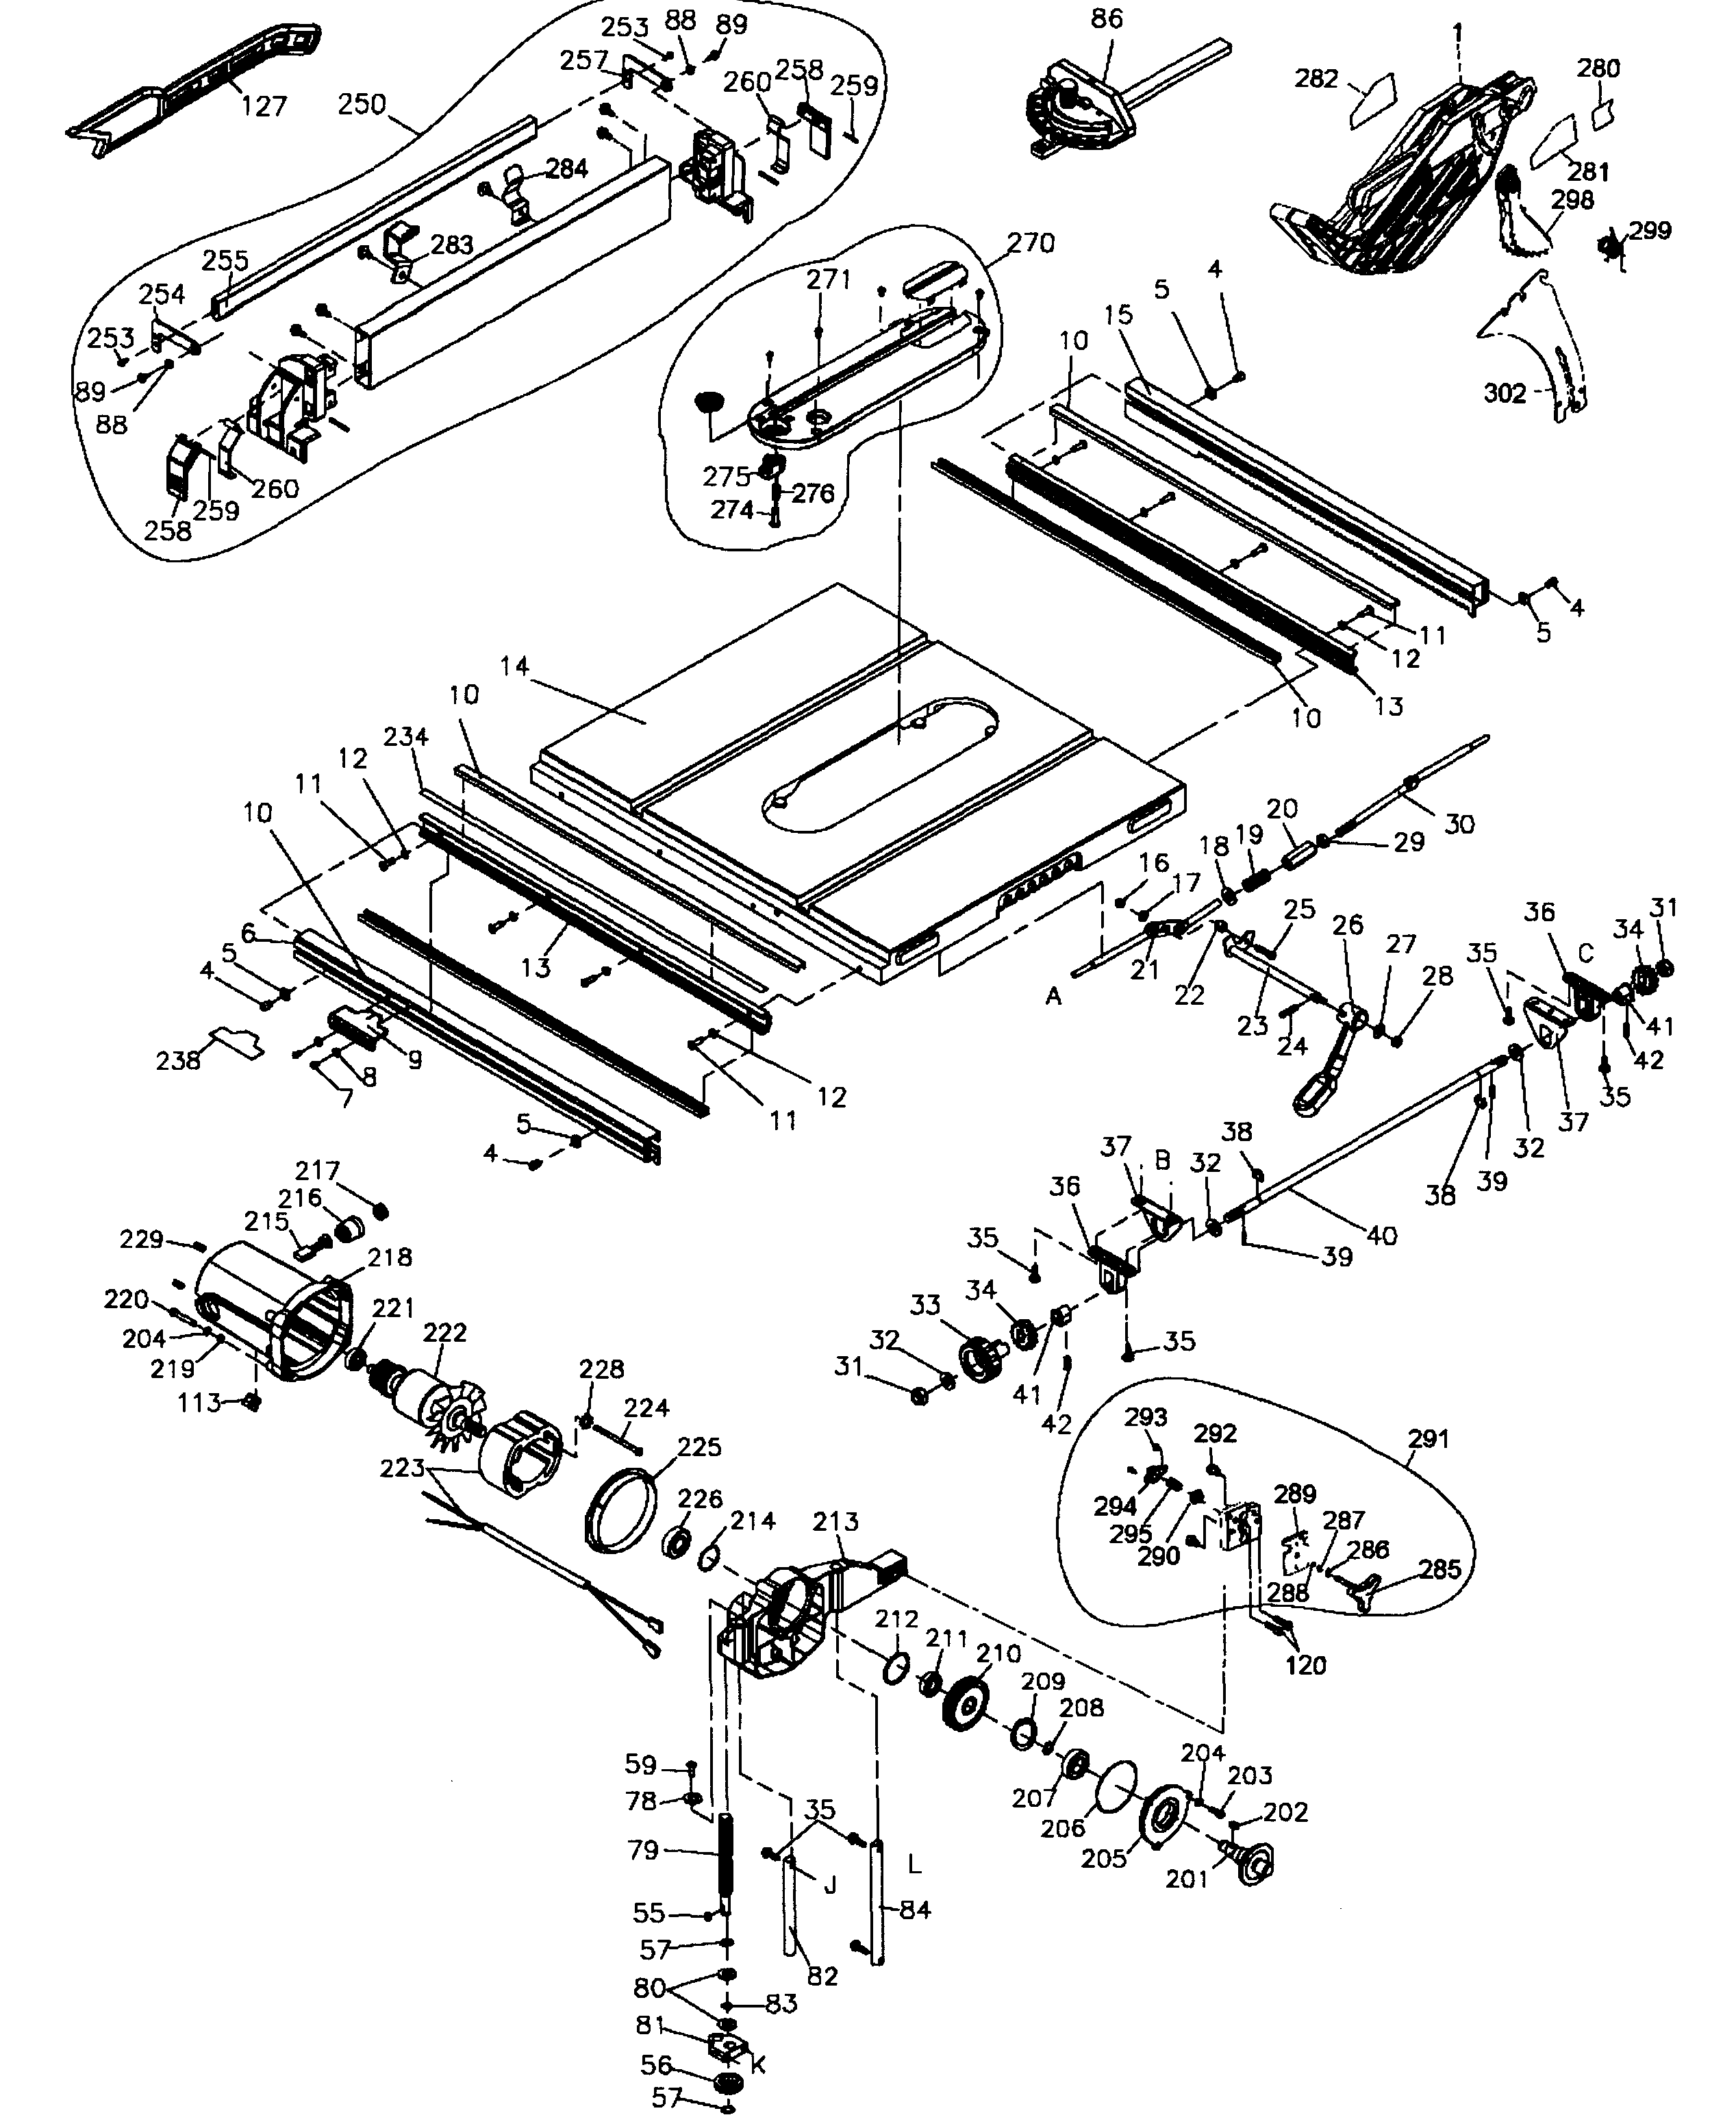 dewalt table saw parts diagram 2005 hyundai santa fe fuse box model dw745type2 sears partsdirect